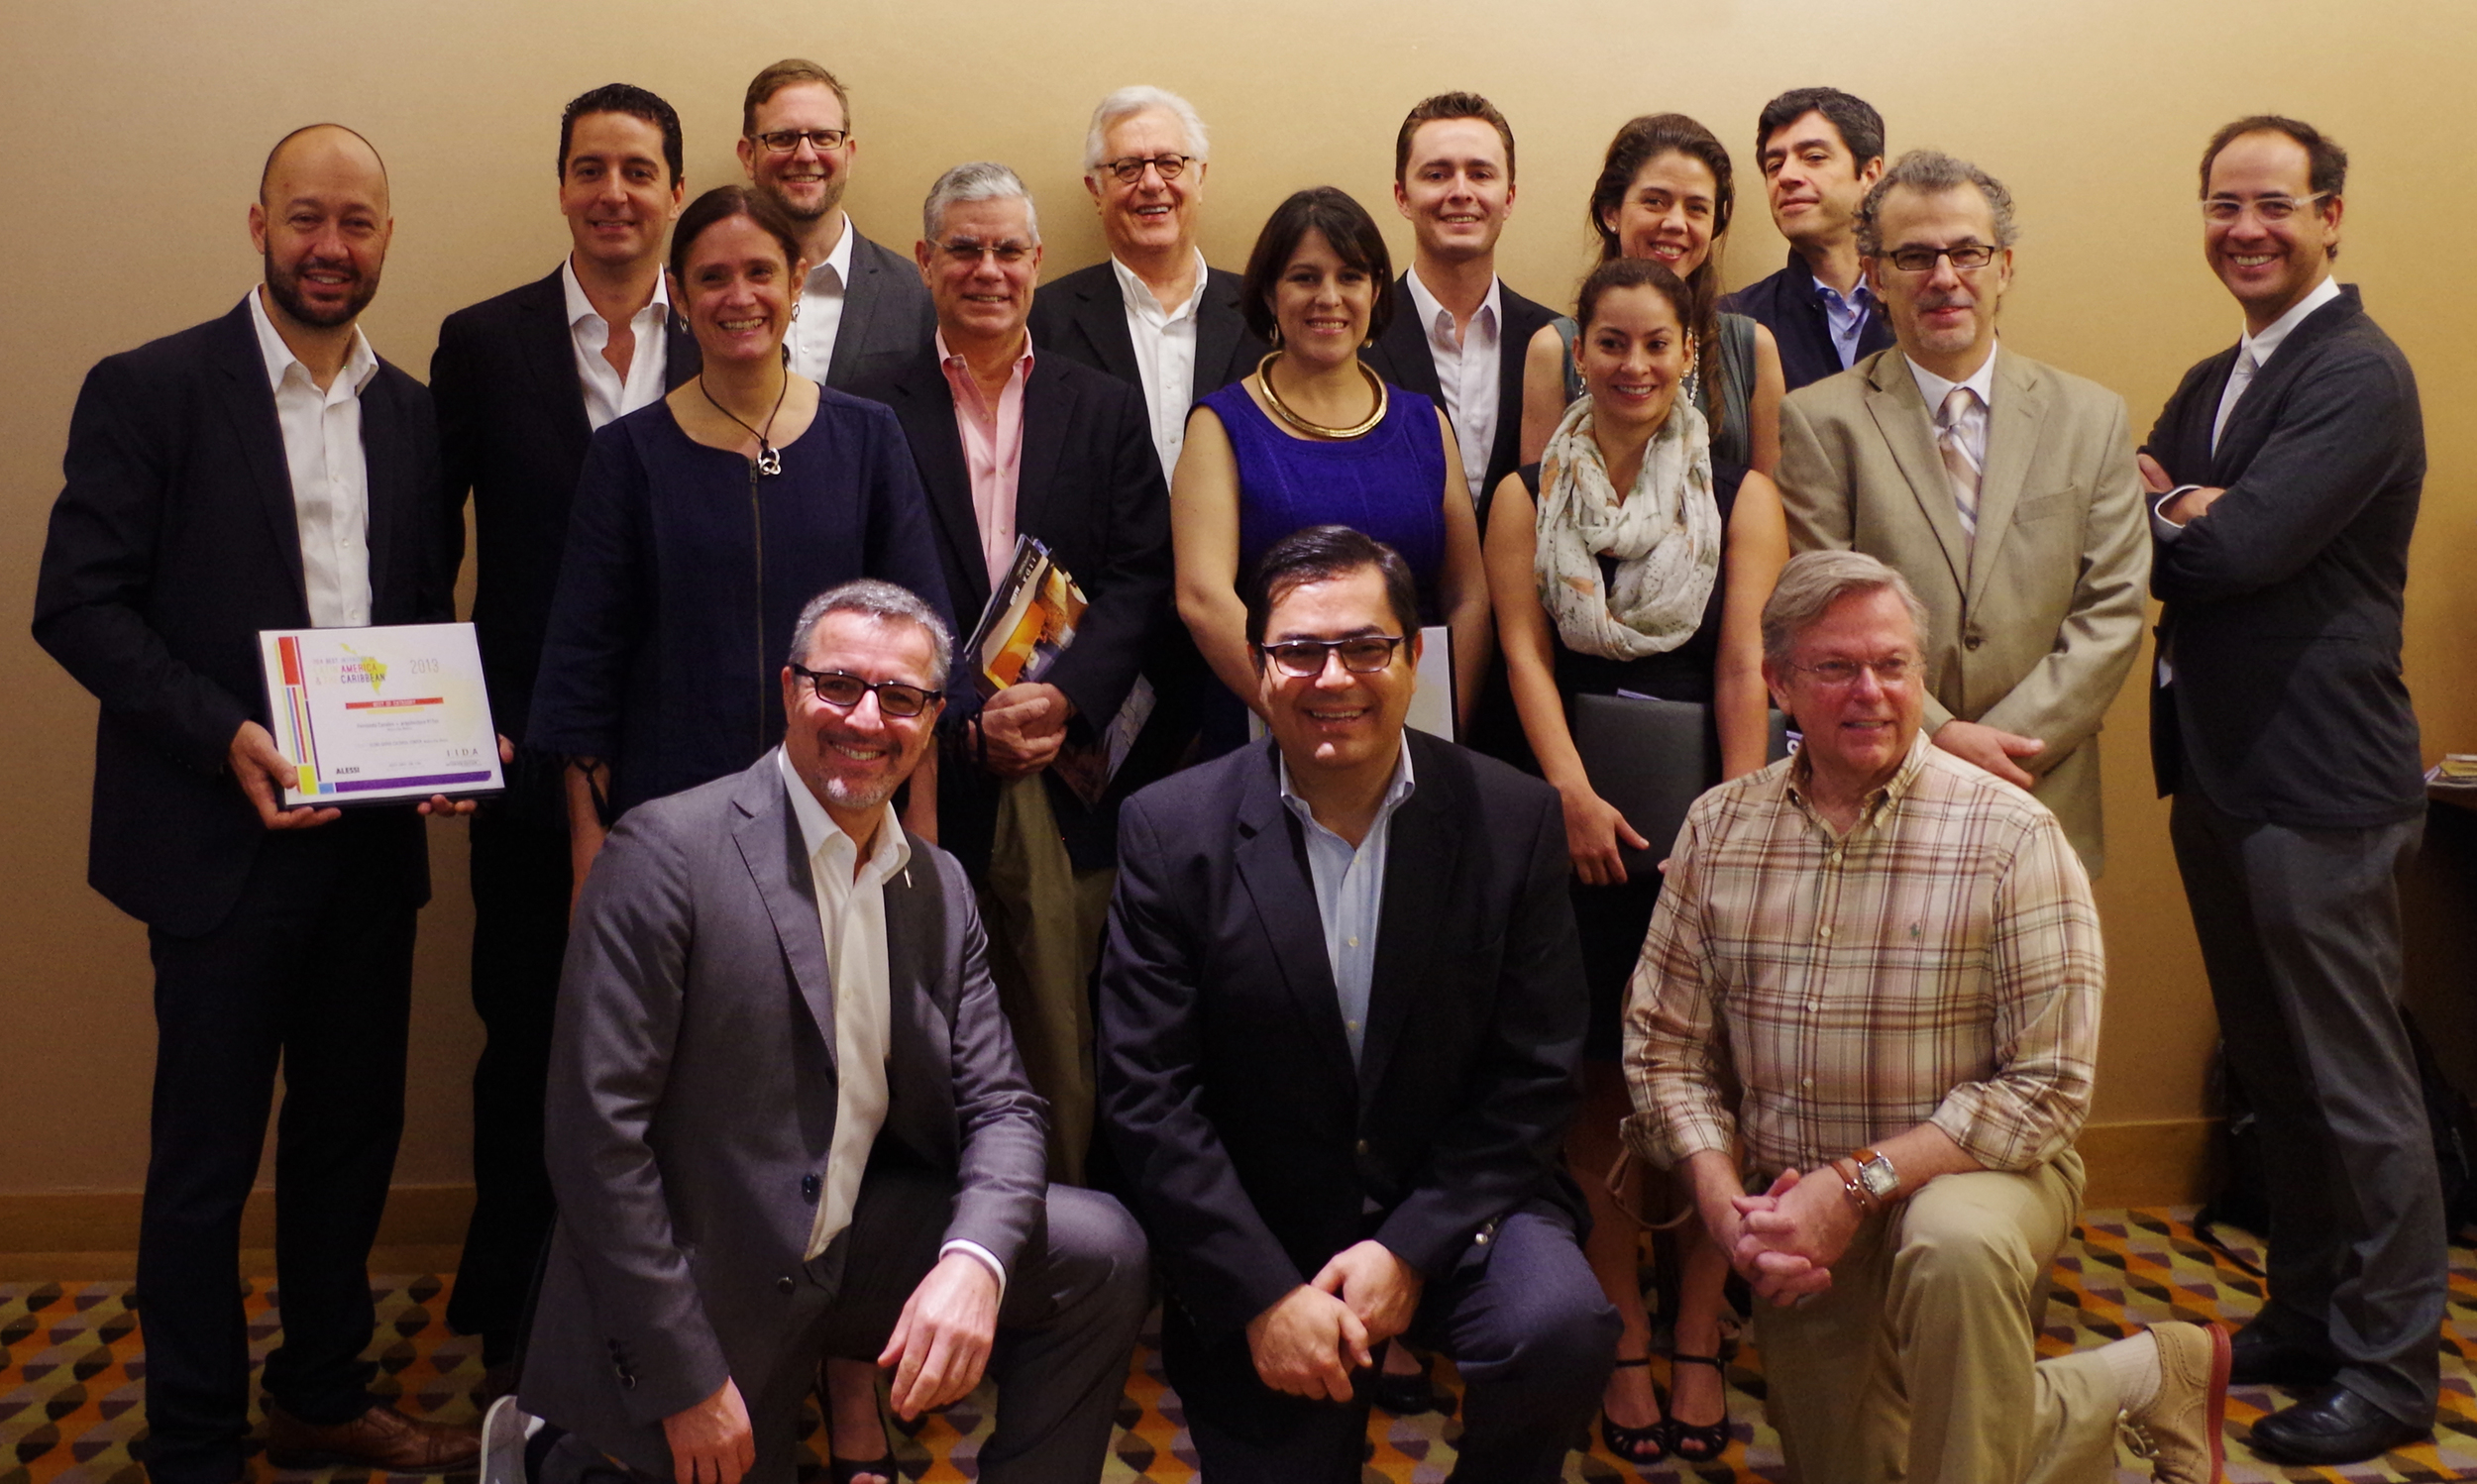 The full group of winners, with Dennis and members of IIDA Miami.